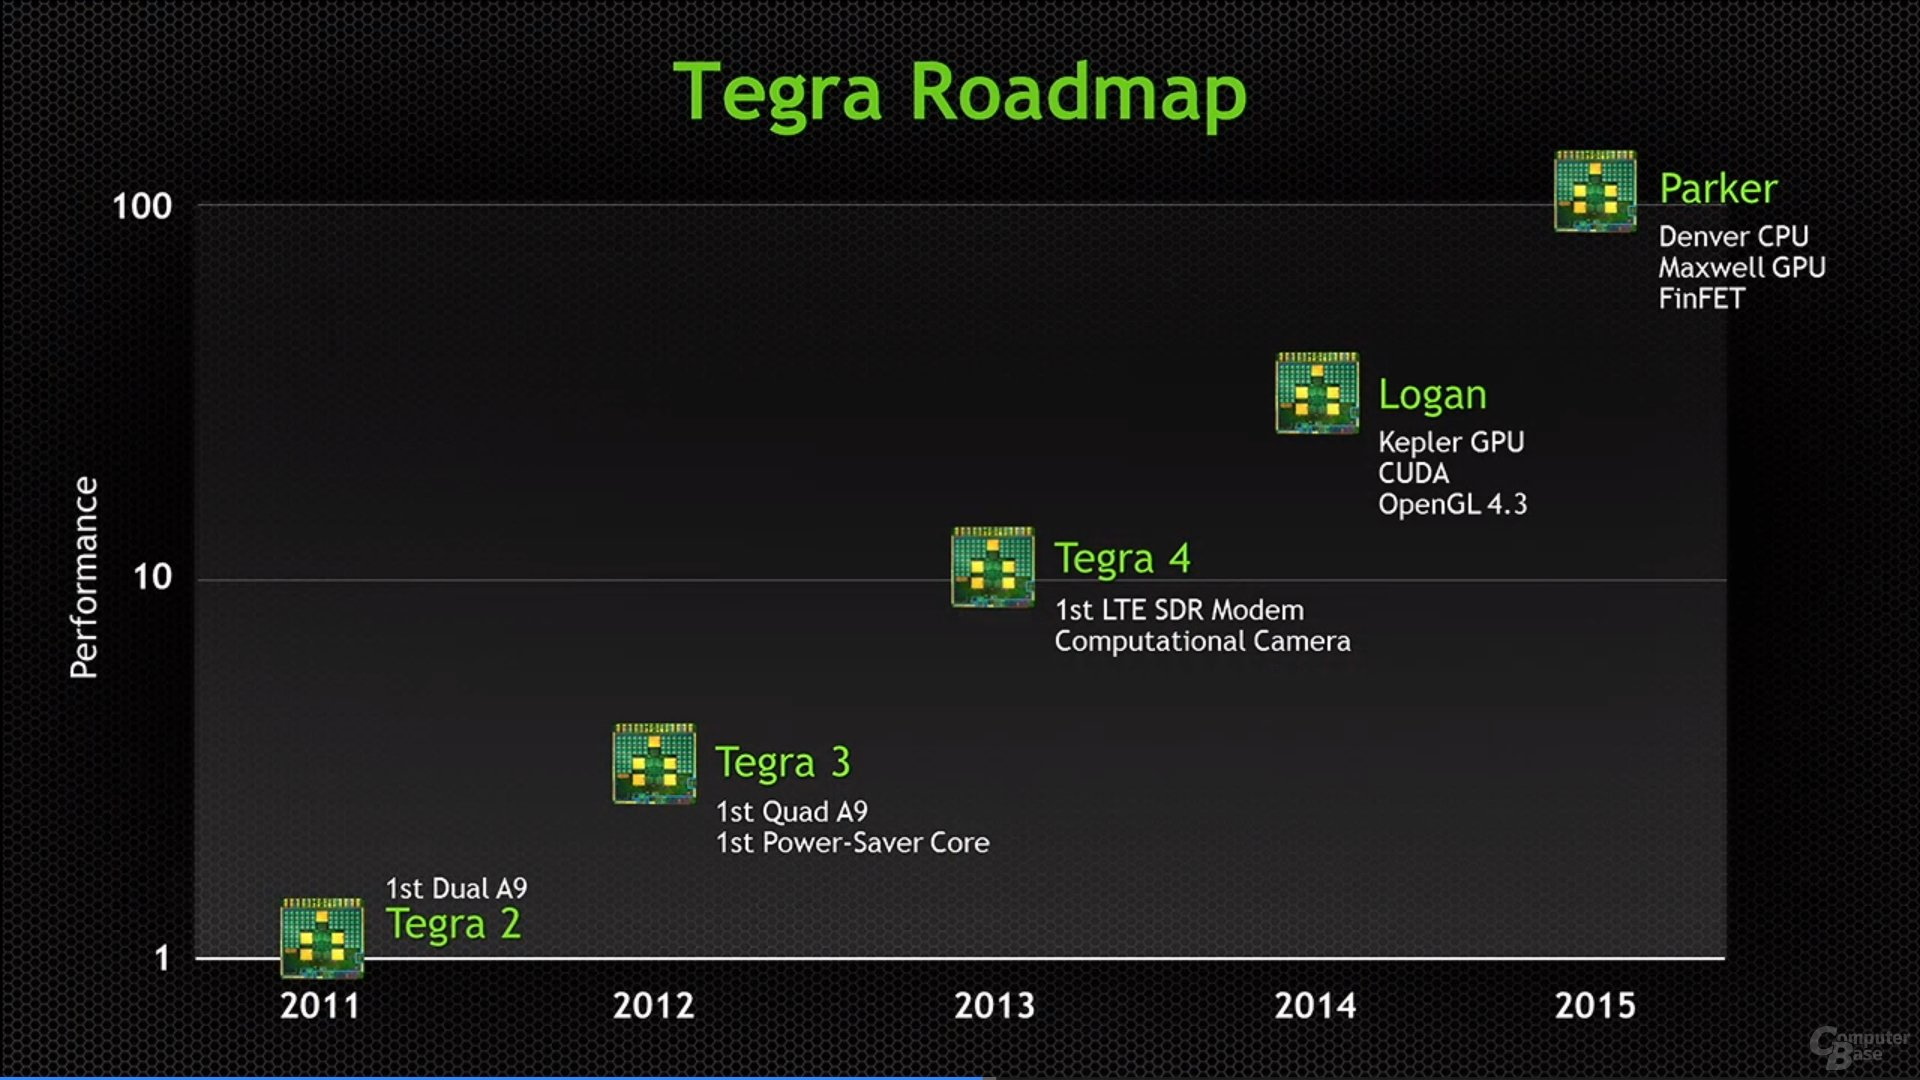 Tegra Roadmap